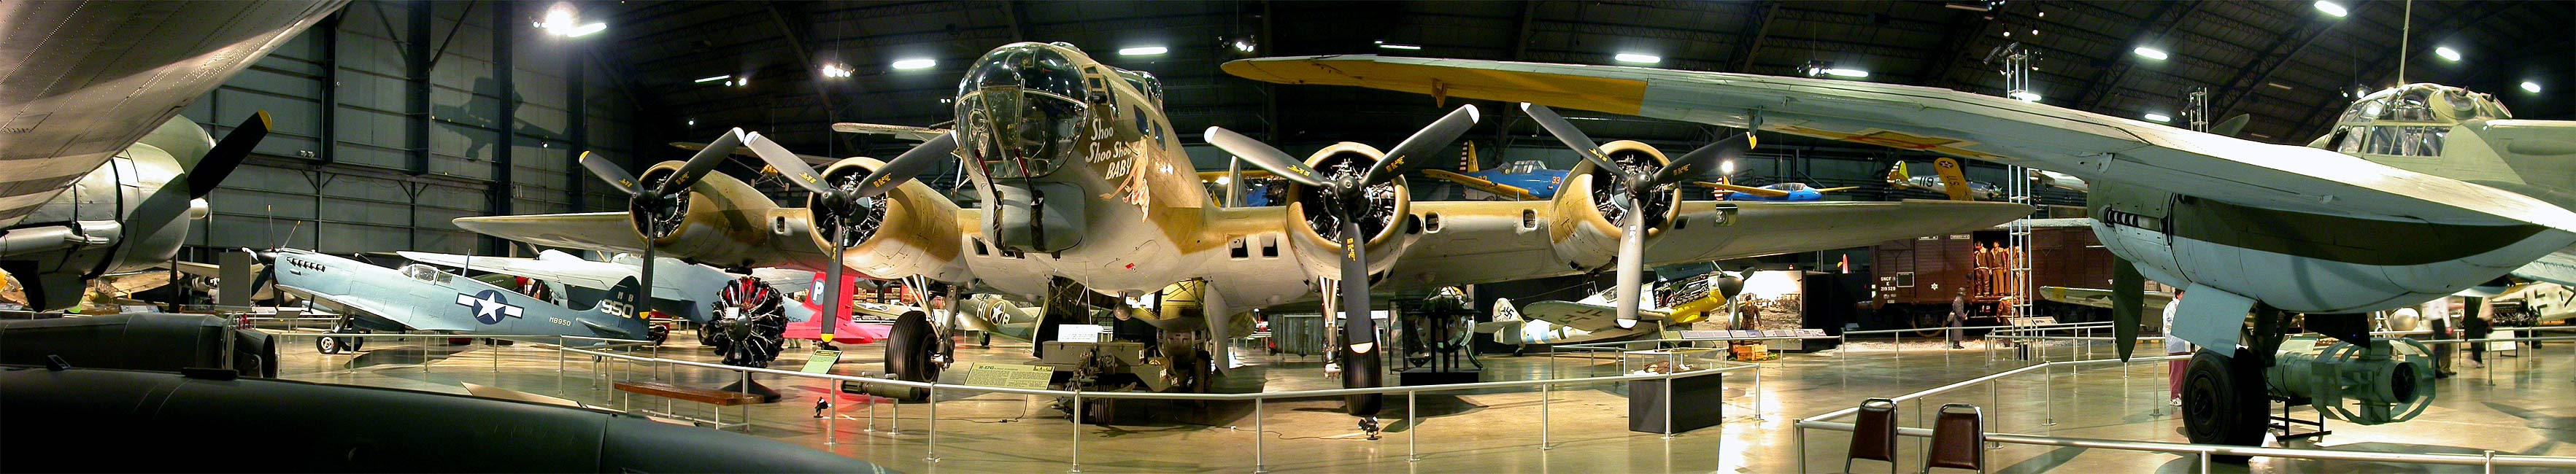 US Air Force Museum In Dayton OH - Air force museums in us